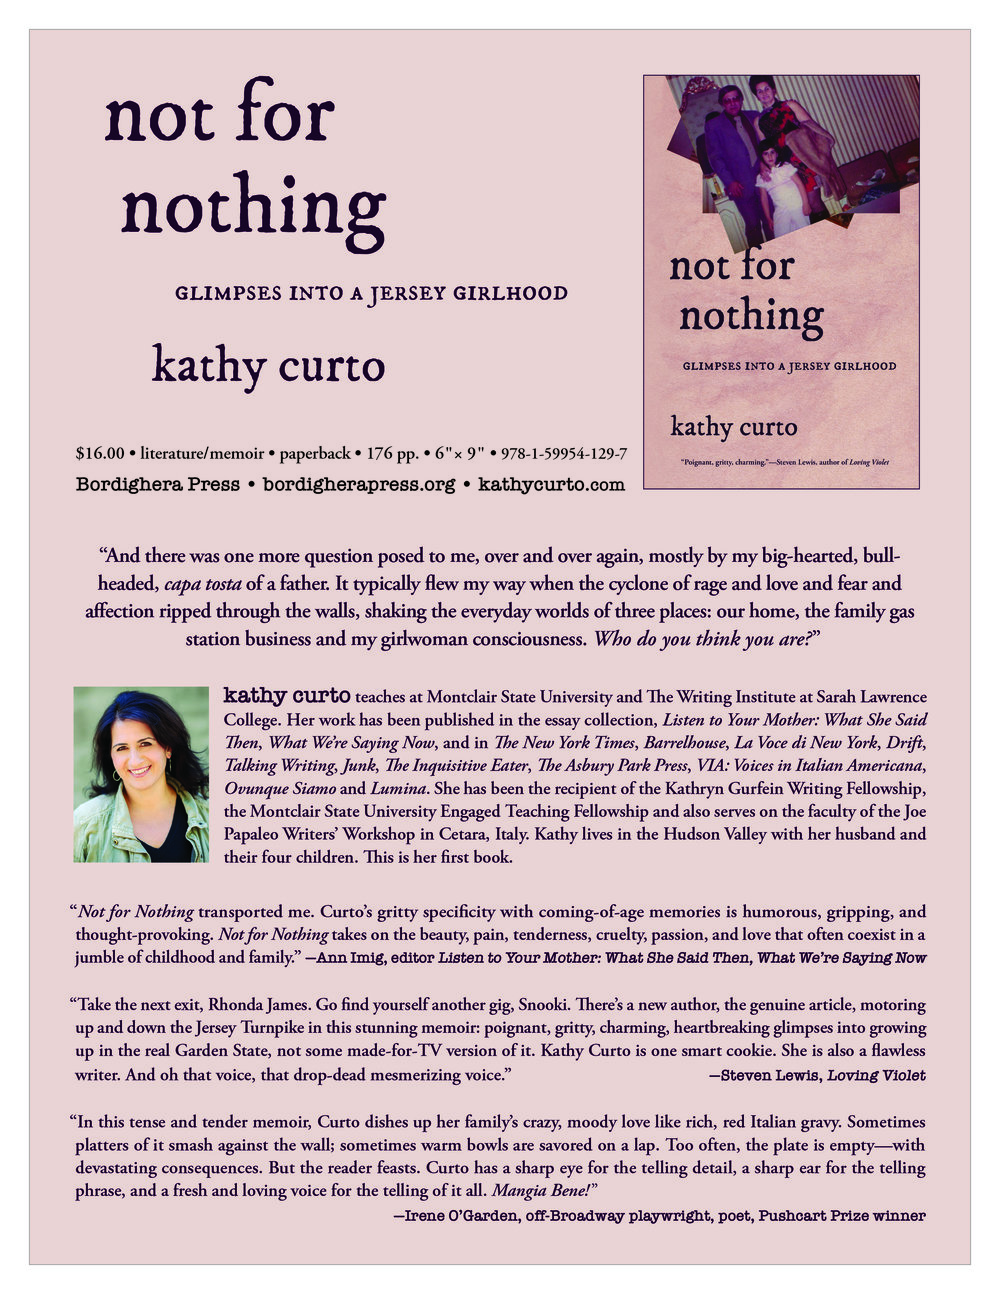 One Sheet for Kathy Curto's memoir, Not for Nothing